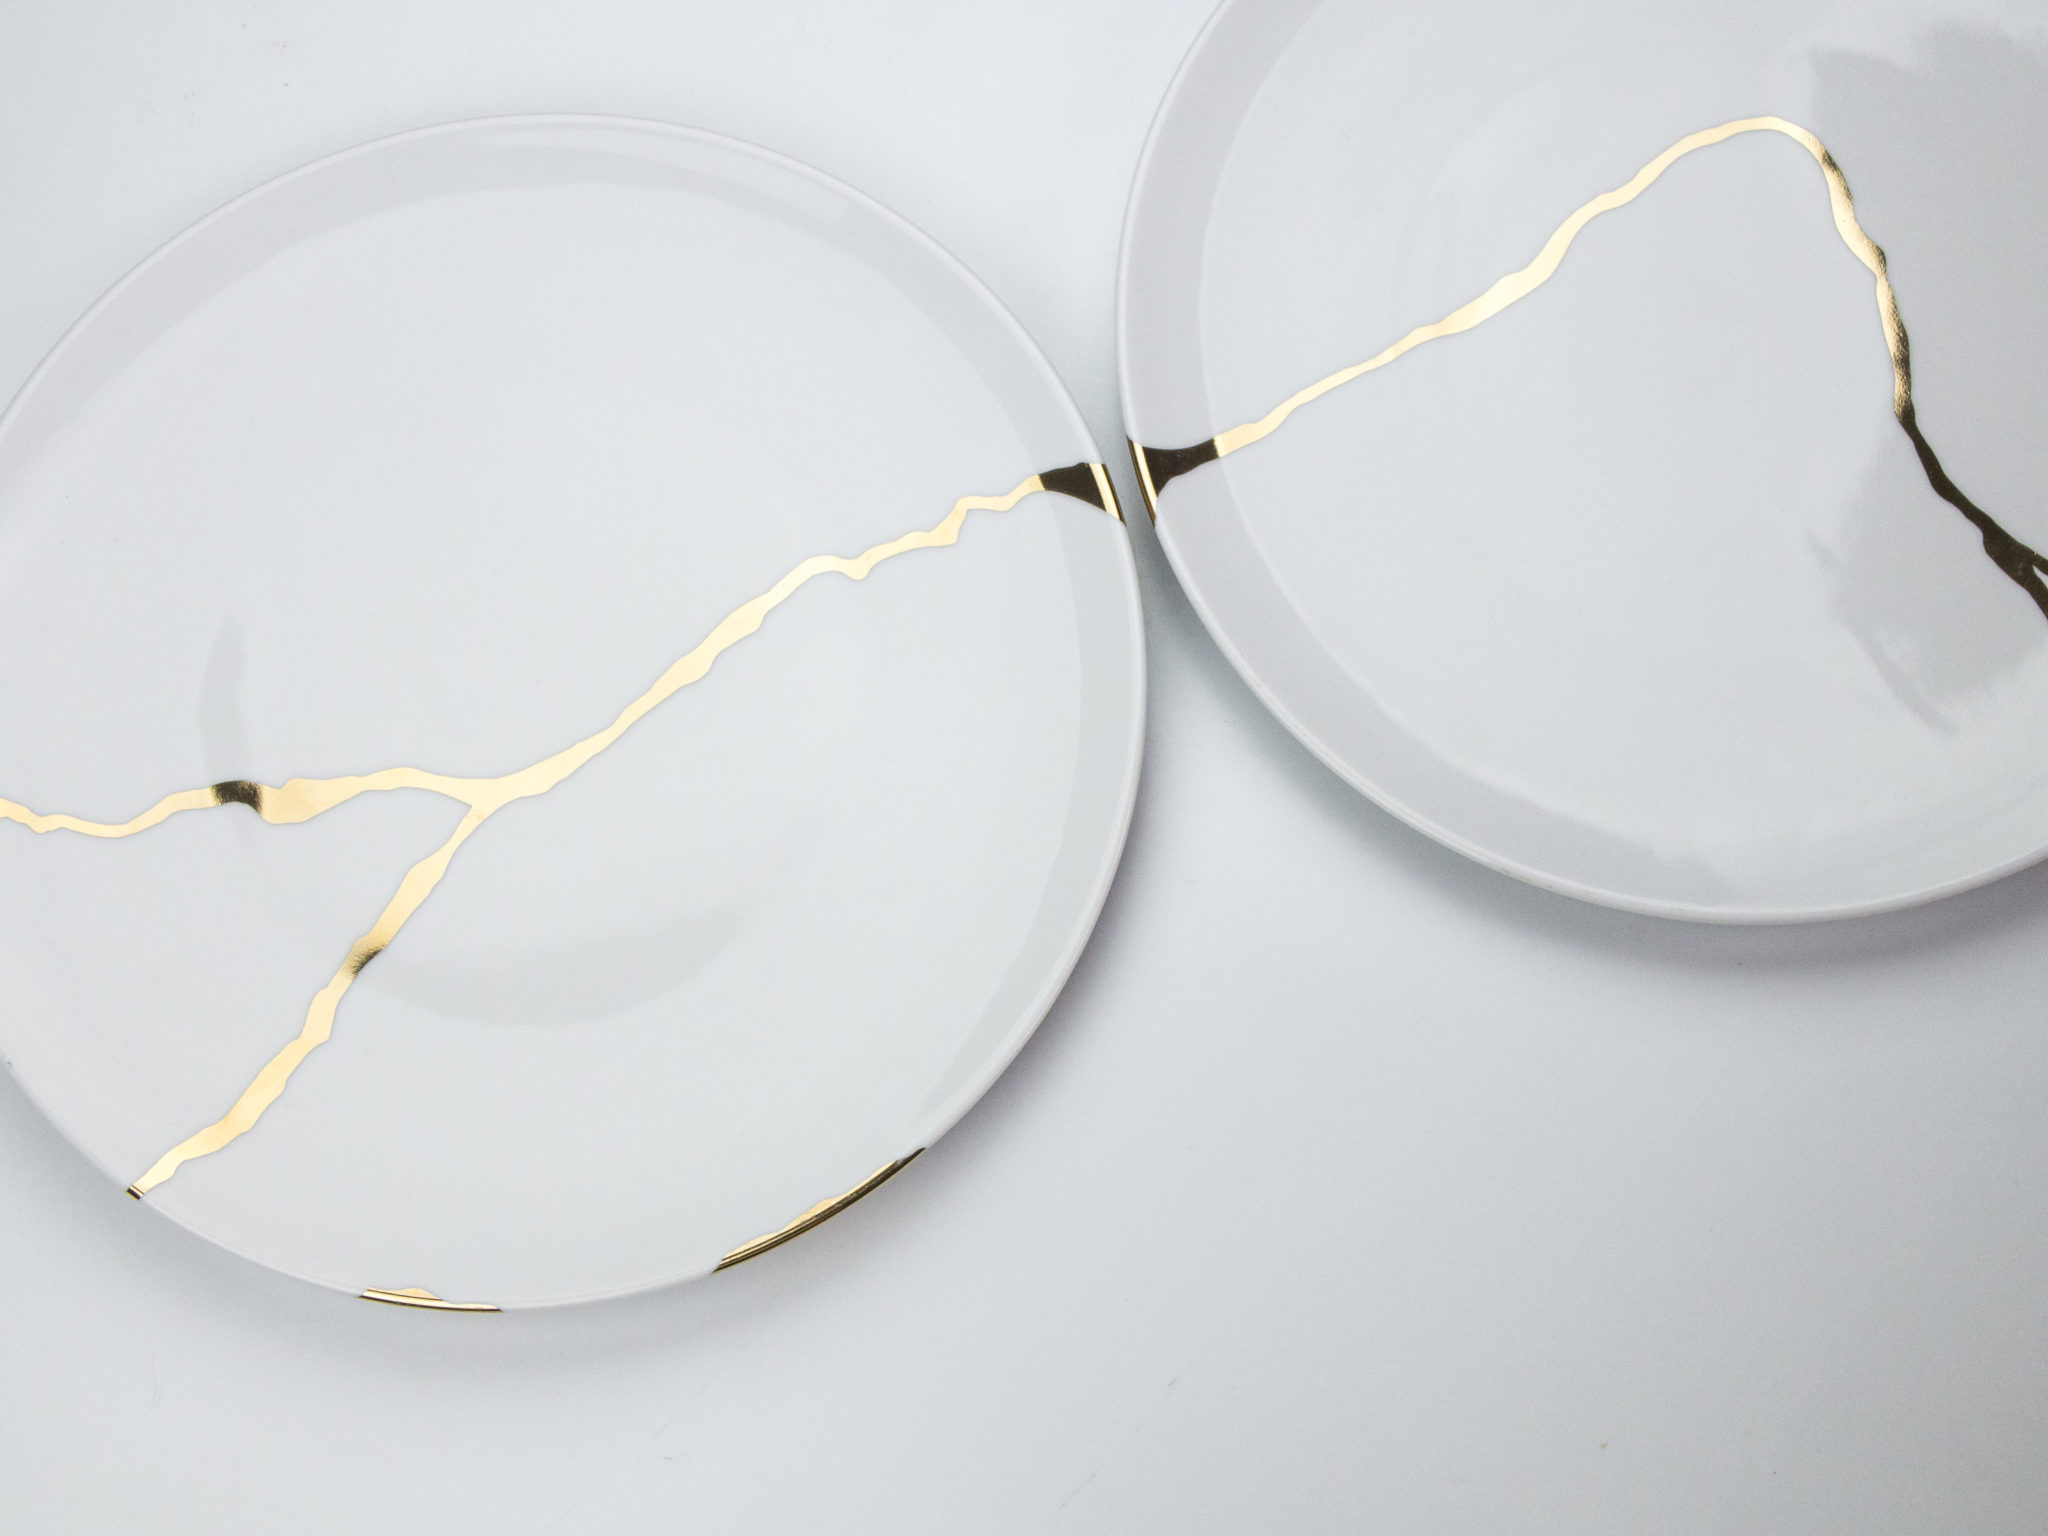 Porcelain plates decorated in honour of the Japanese art of Kintsugi by Japana